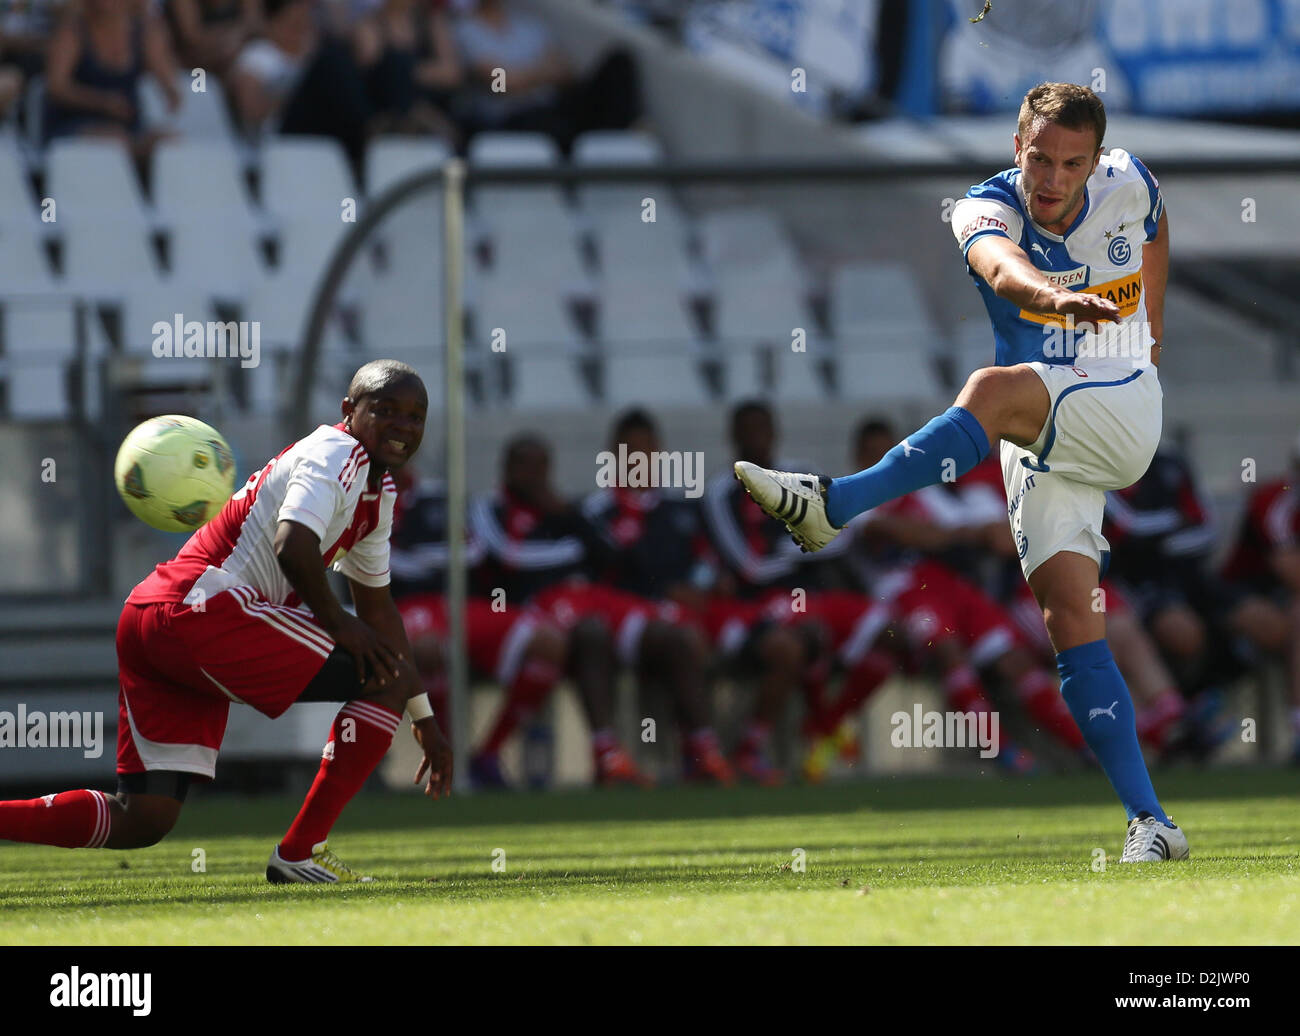 CAPE TOWN, South Africa - Saturday 26 January 2013, Shkelzen Gashi of Grasshopper Club Zurich takes a shot at goal - Stock Image